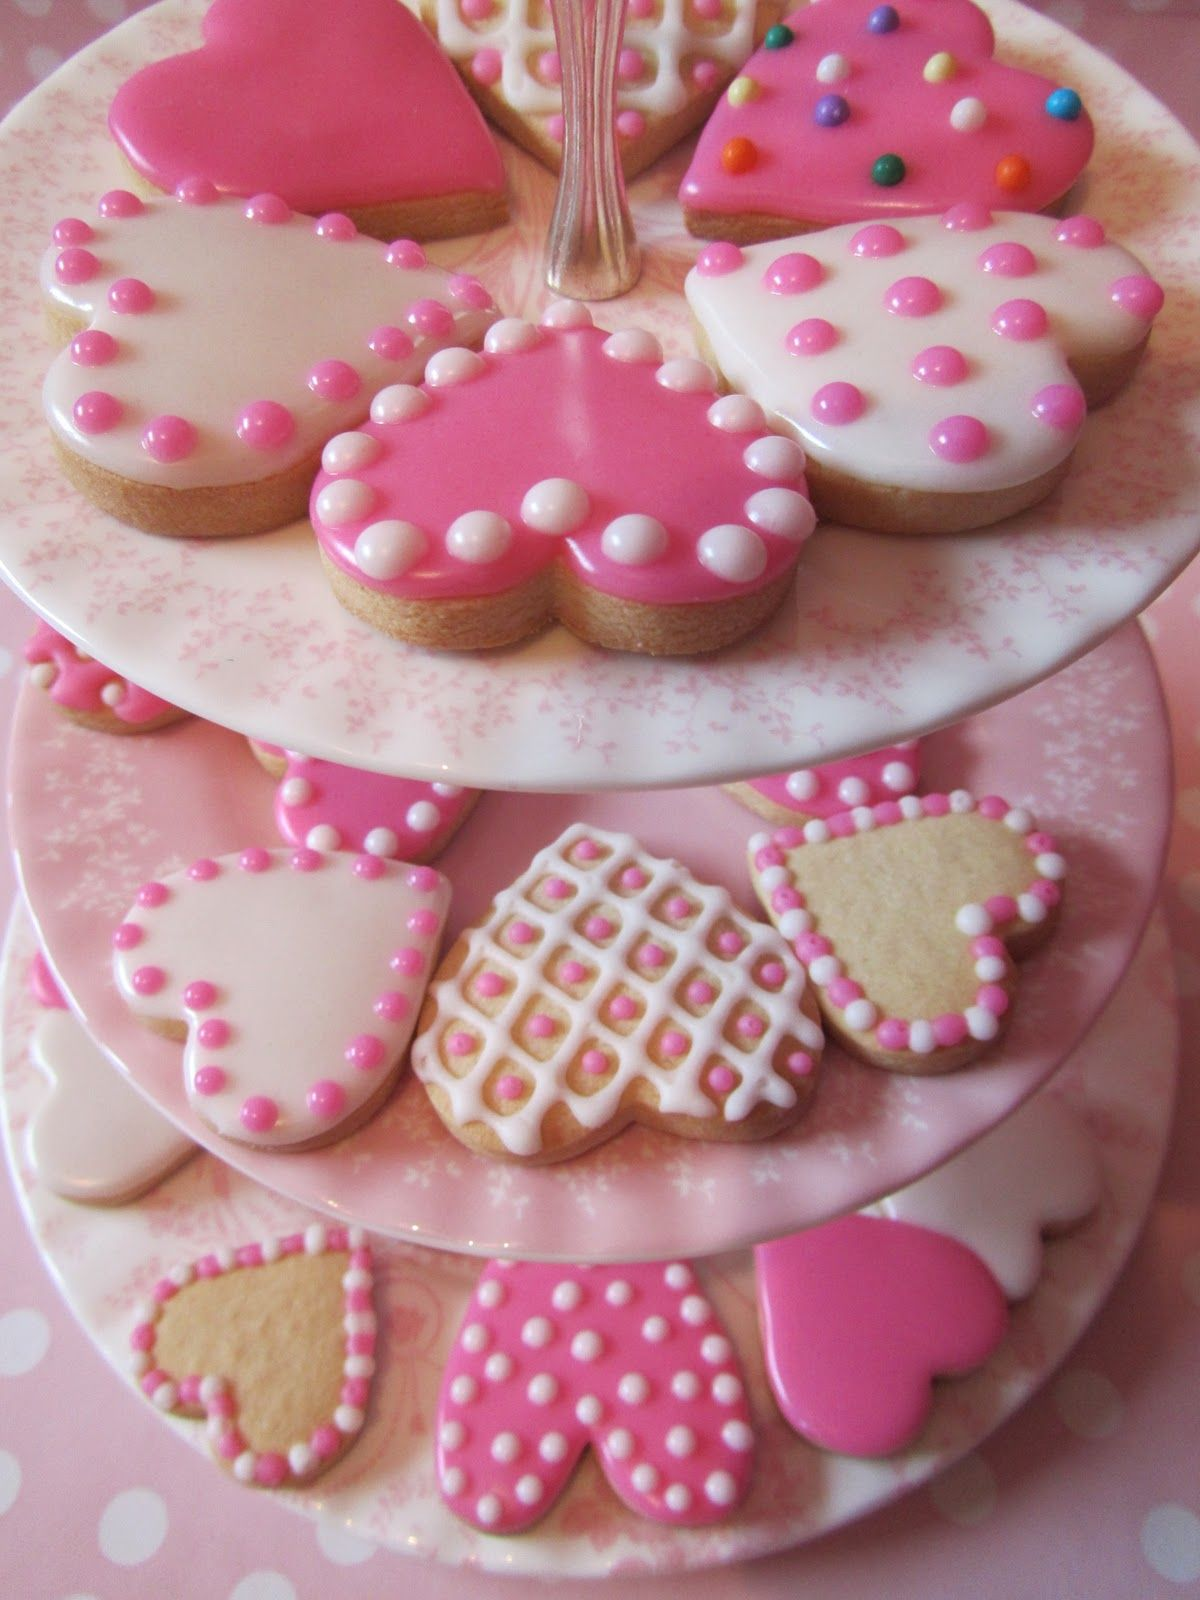 Galletas De Corazon Decoradas Galletas Decoradas Buscar Con Google Galletas Pinterest